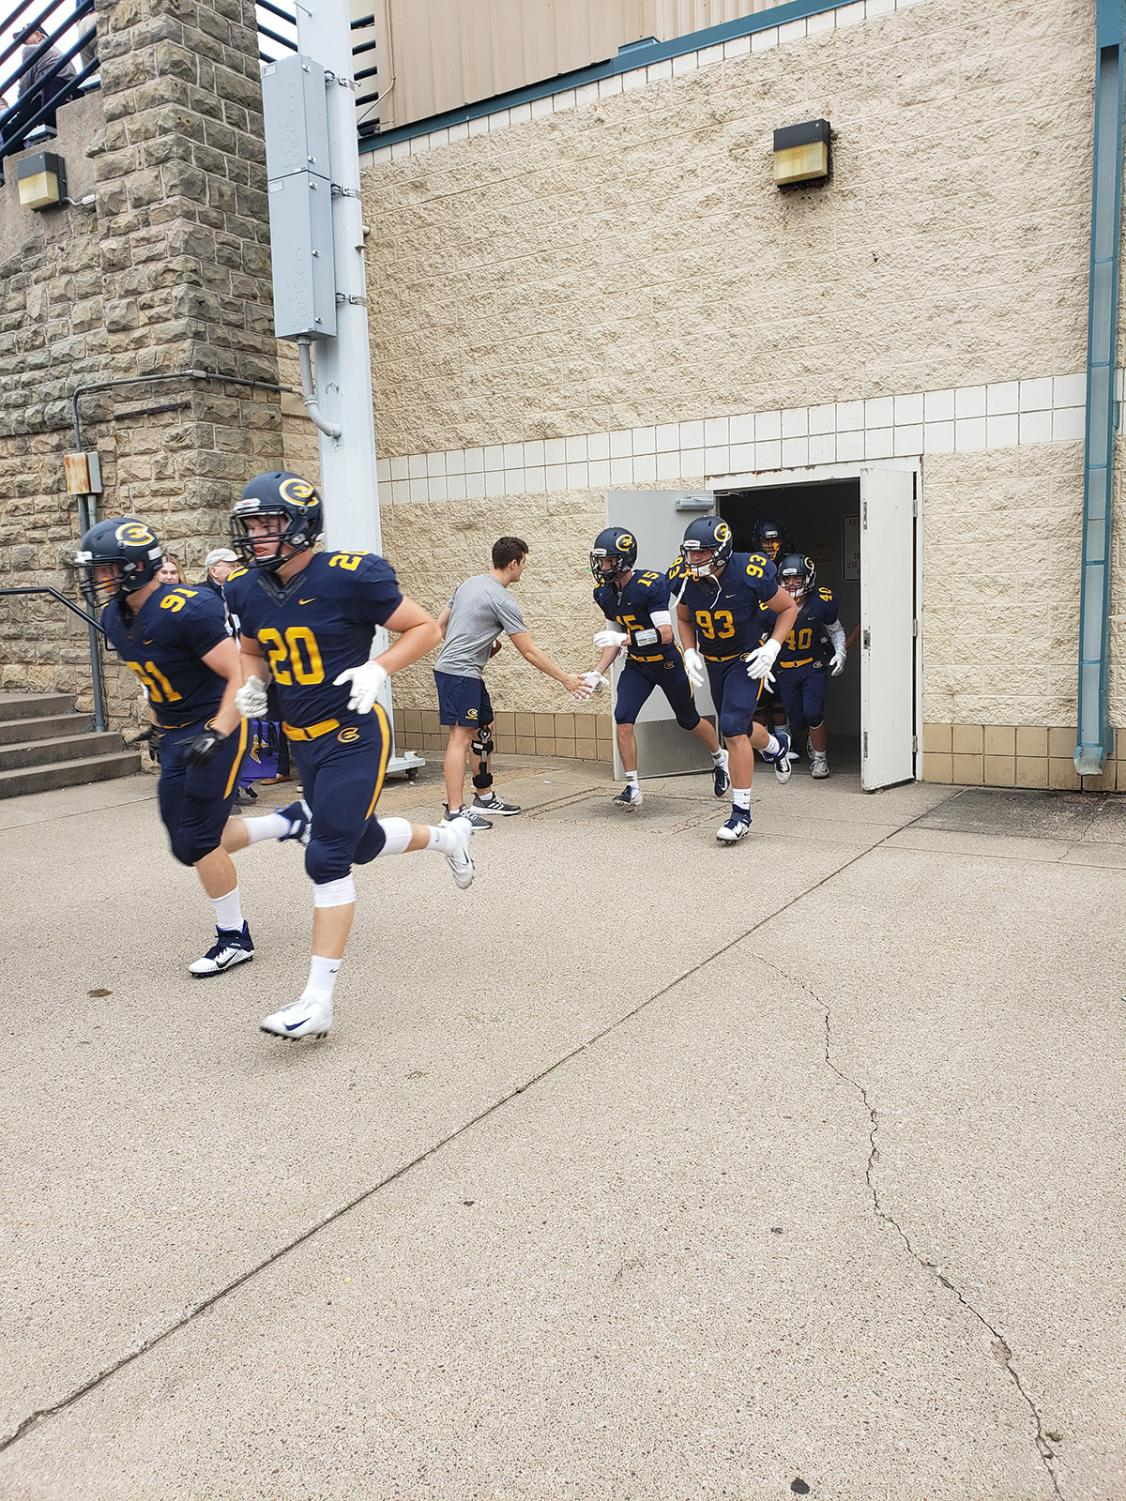 The Blugolds run out to face the Loras Duhawks